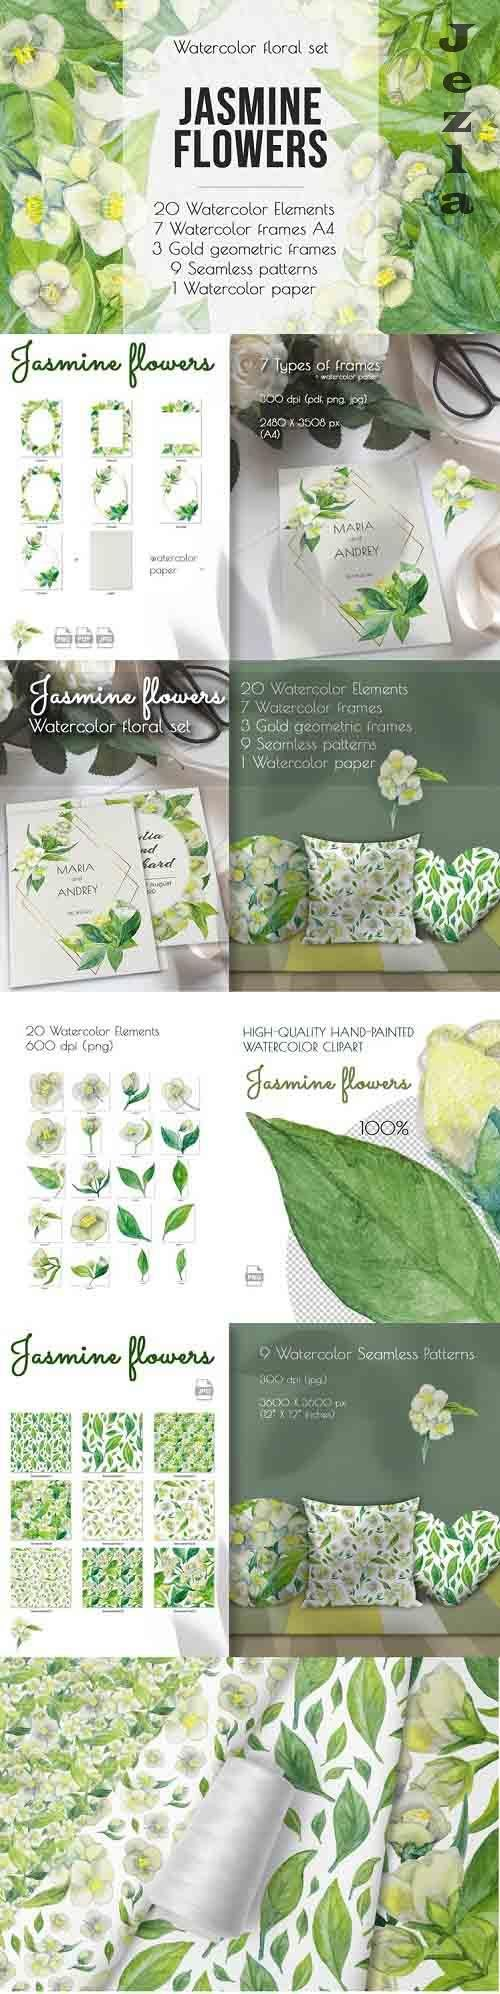 Jasmine flowers and leaves. Watercolor clip art - 864260